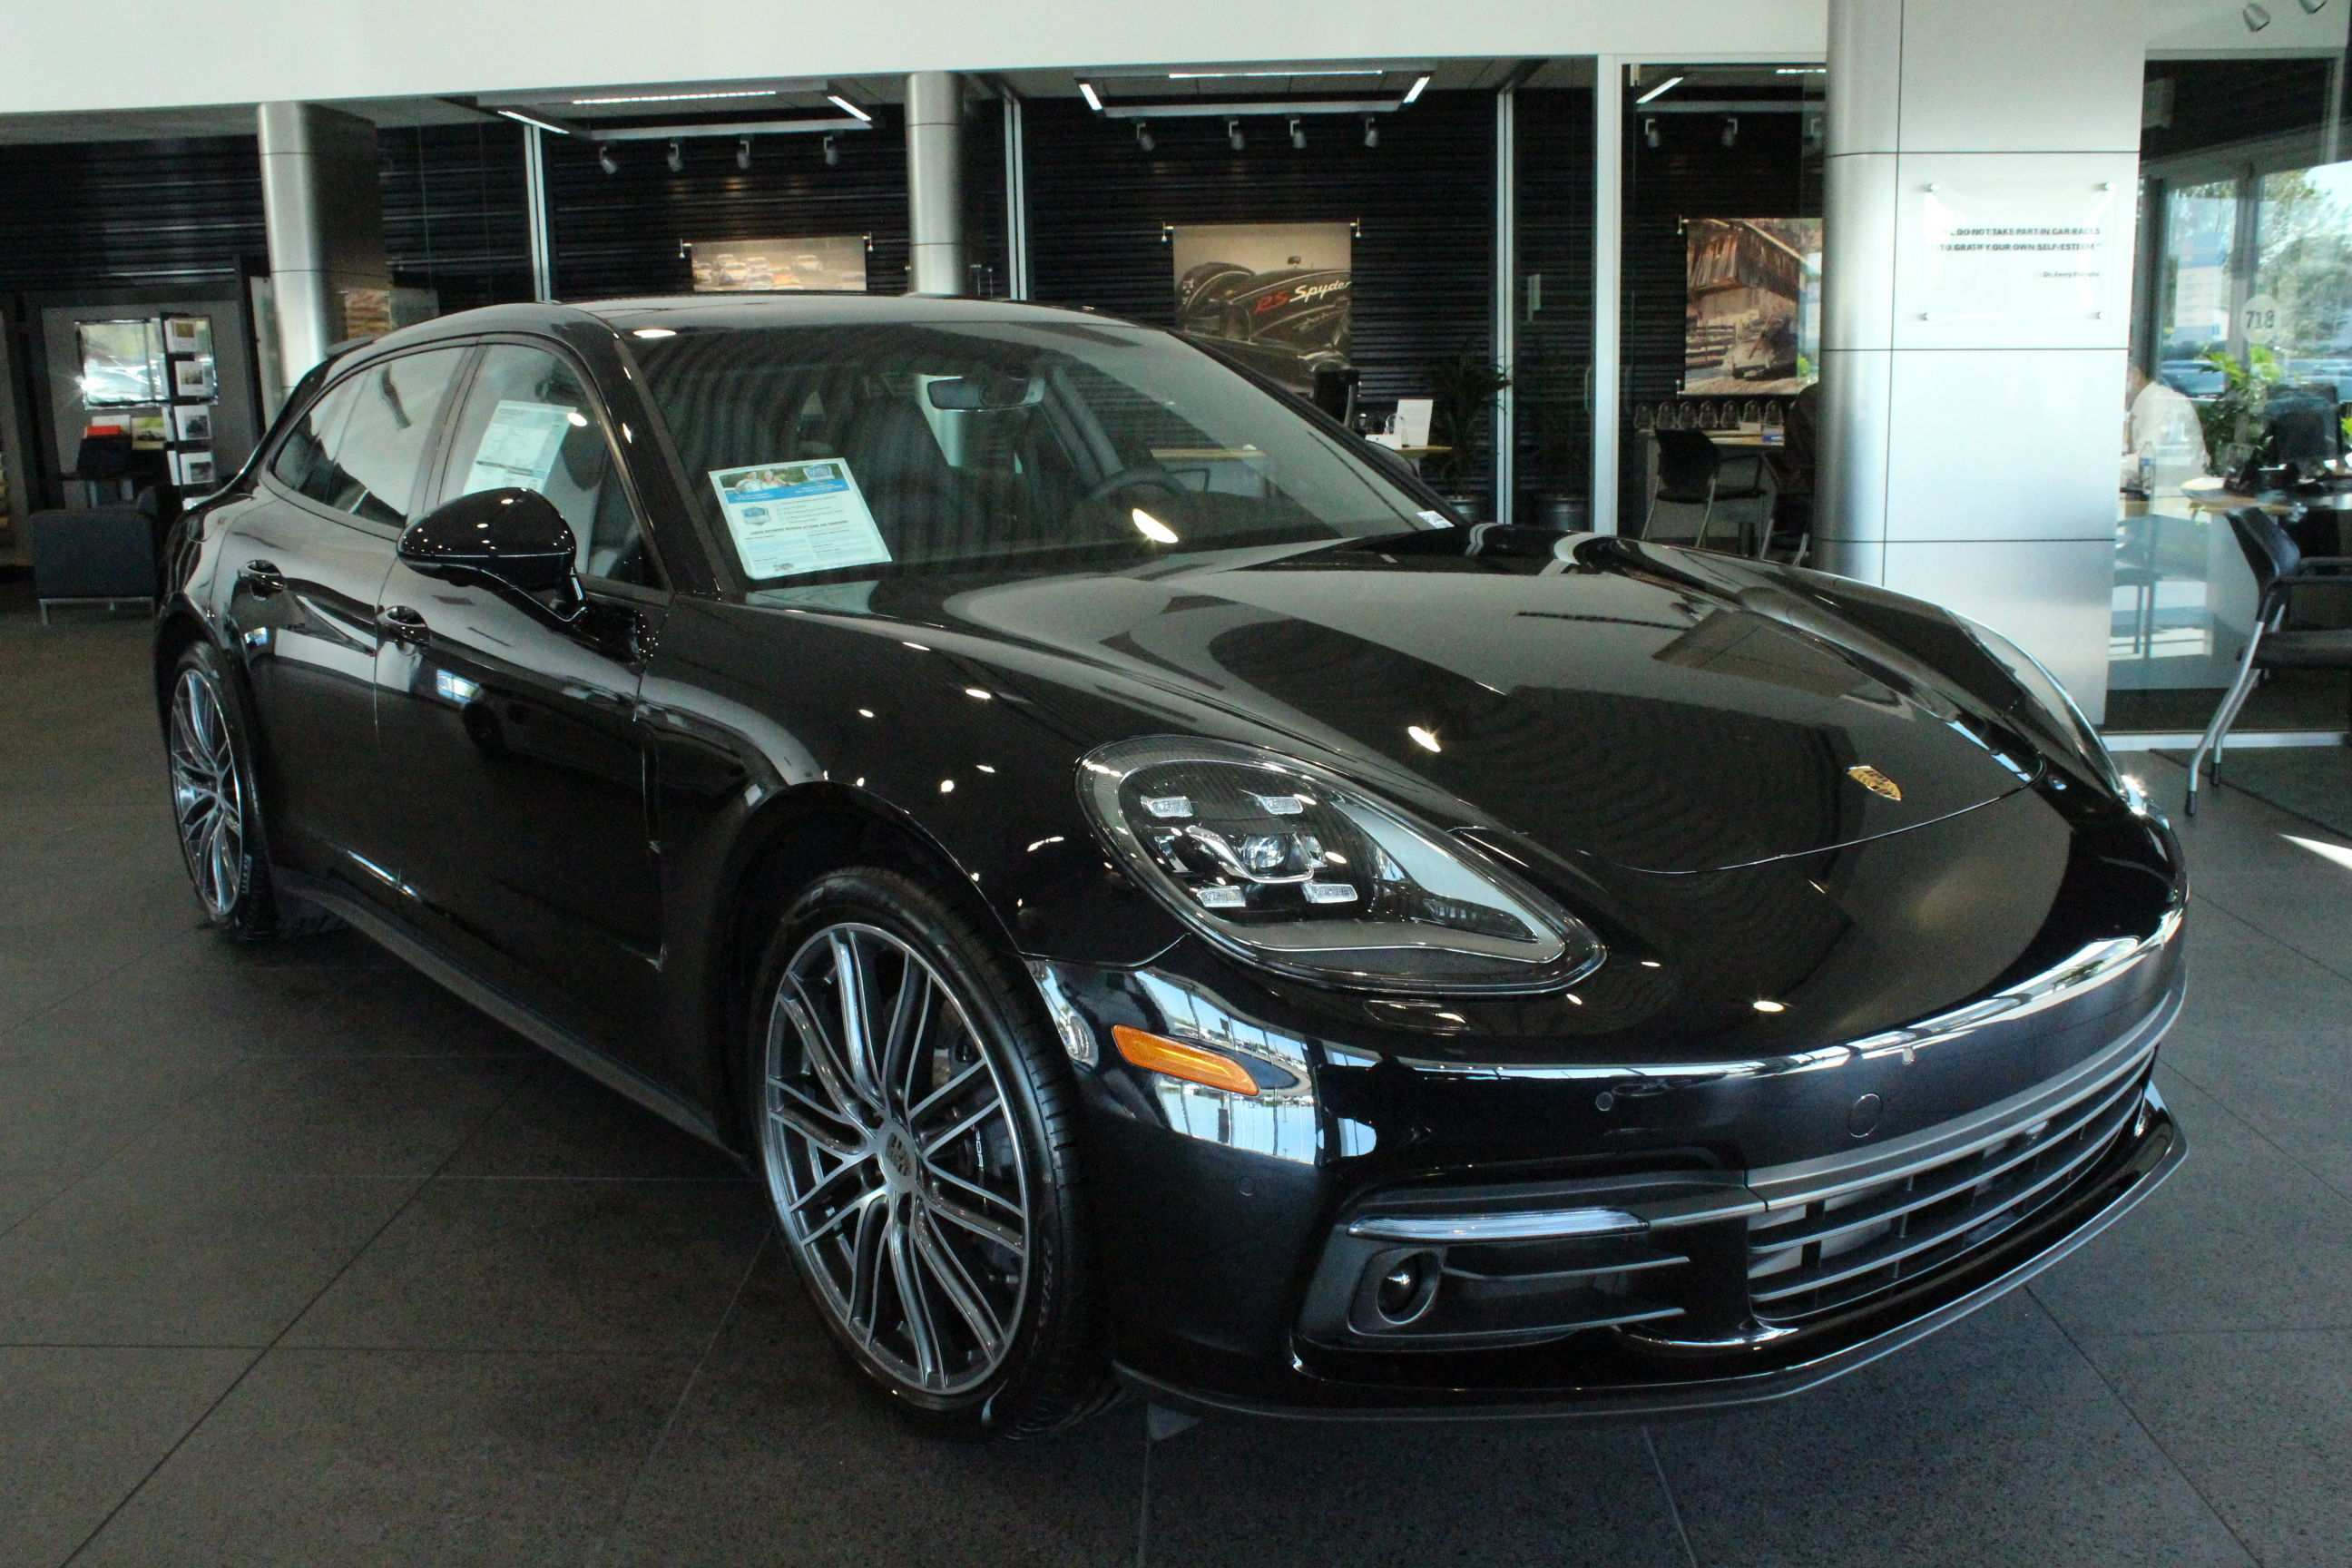 92 A 2019 The Porsche Panamera Price And Release Date